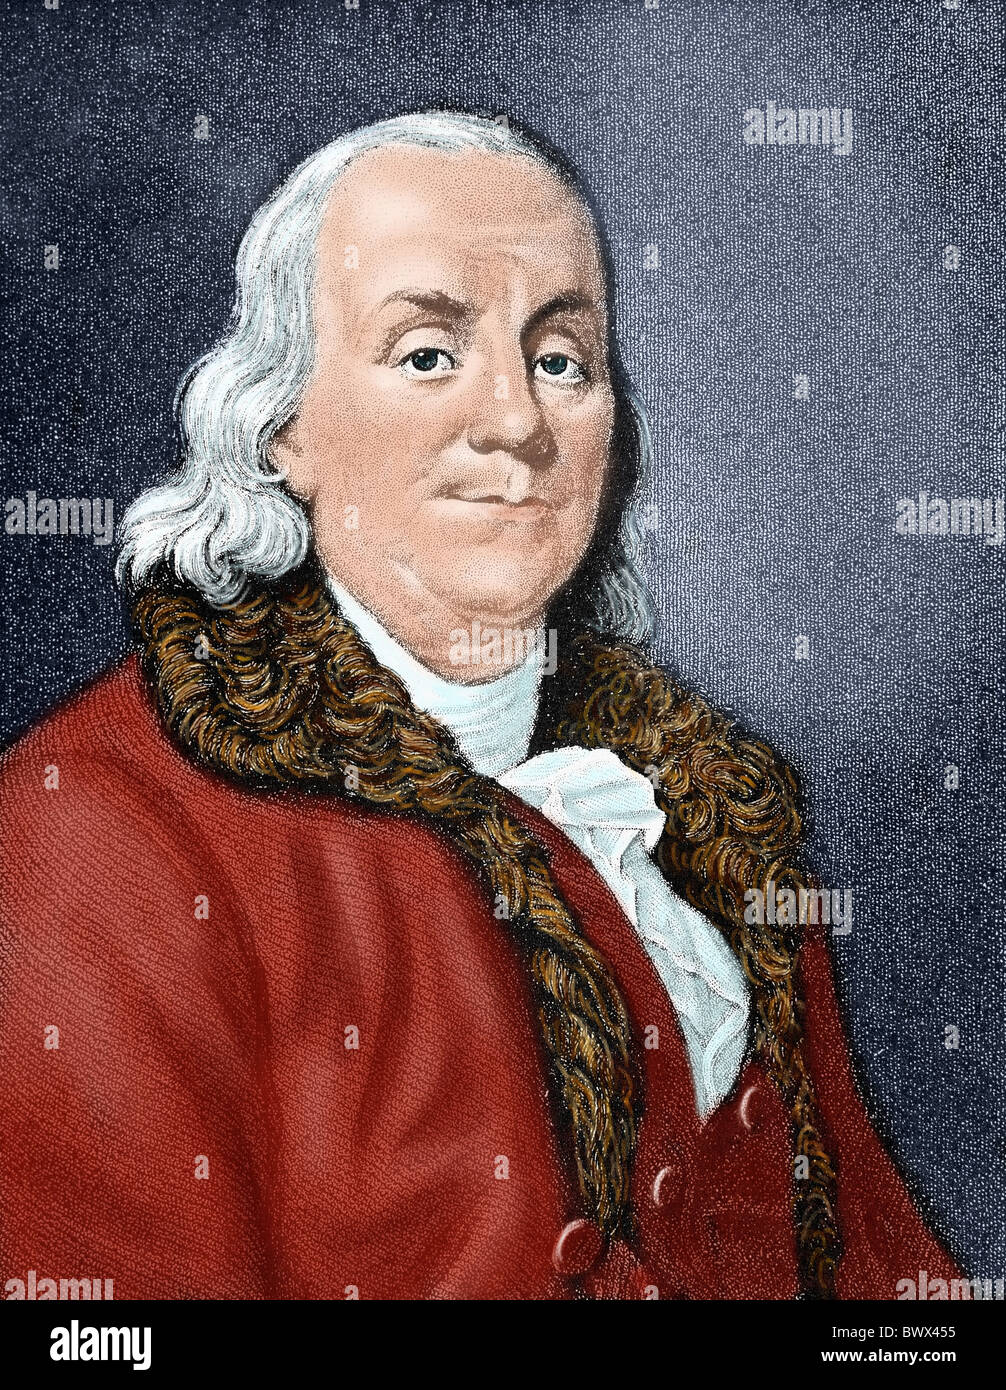 Franklin, Benjamin (1706-1790). American statesman and scientist. Colored engraving. - Stock Image